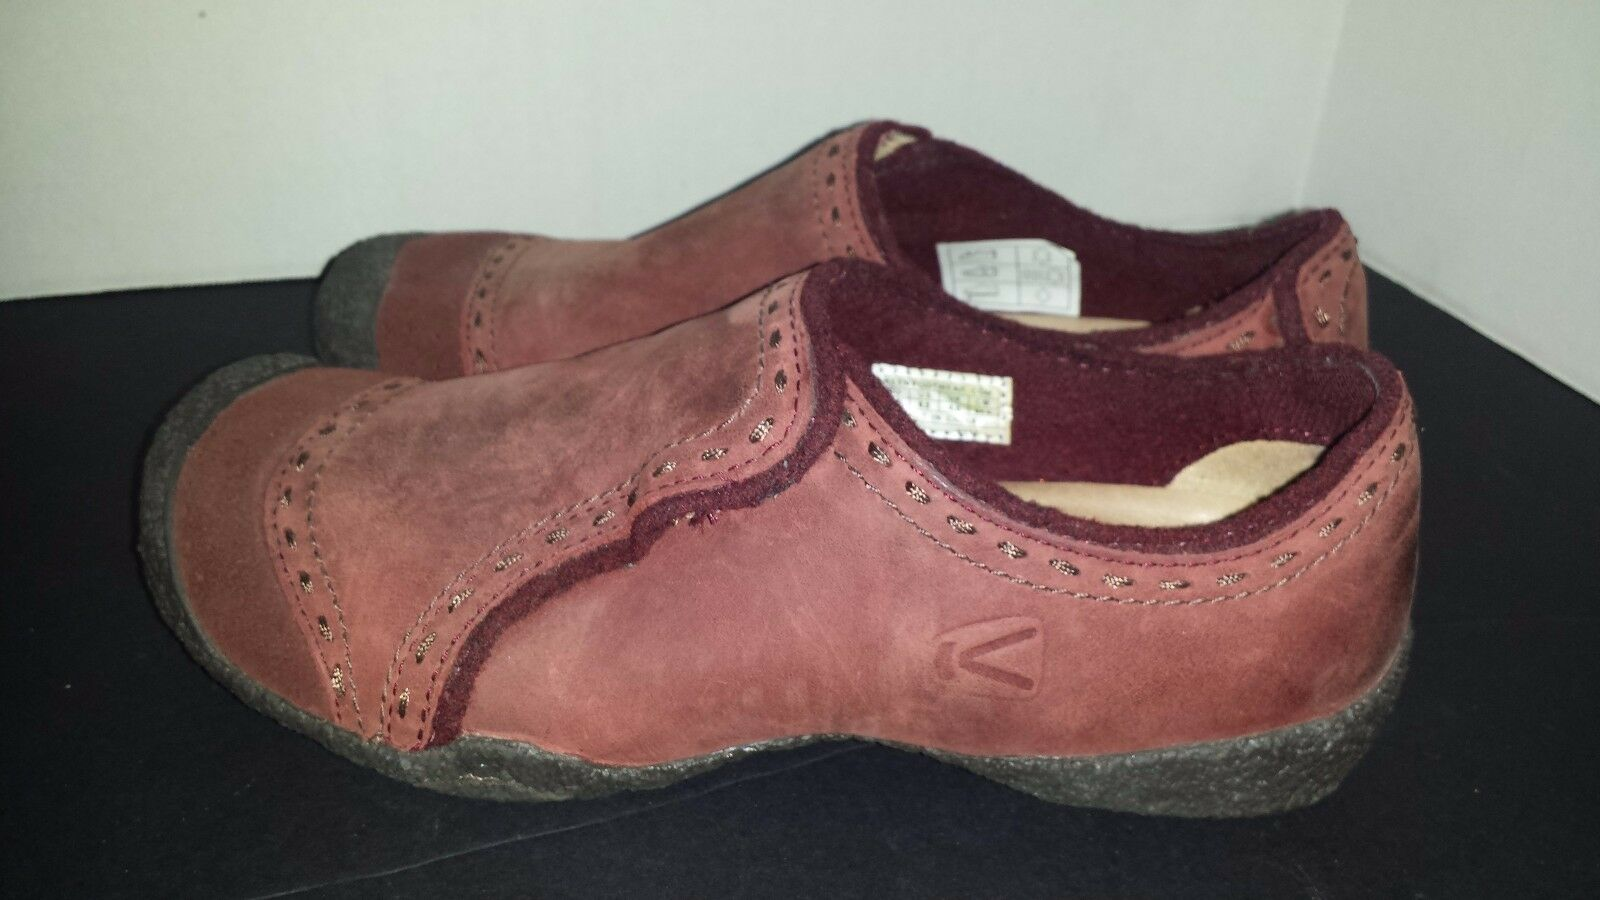 KEEN clog loafer Burgundy Maroon leather suede slip on shoes US 6.5